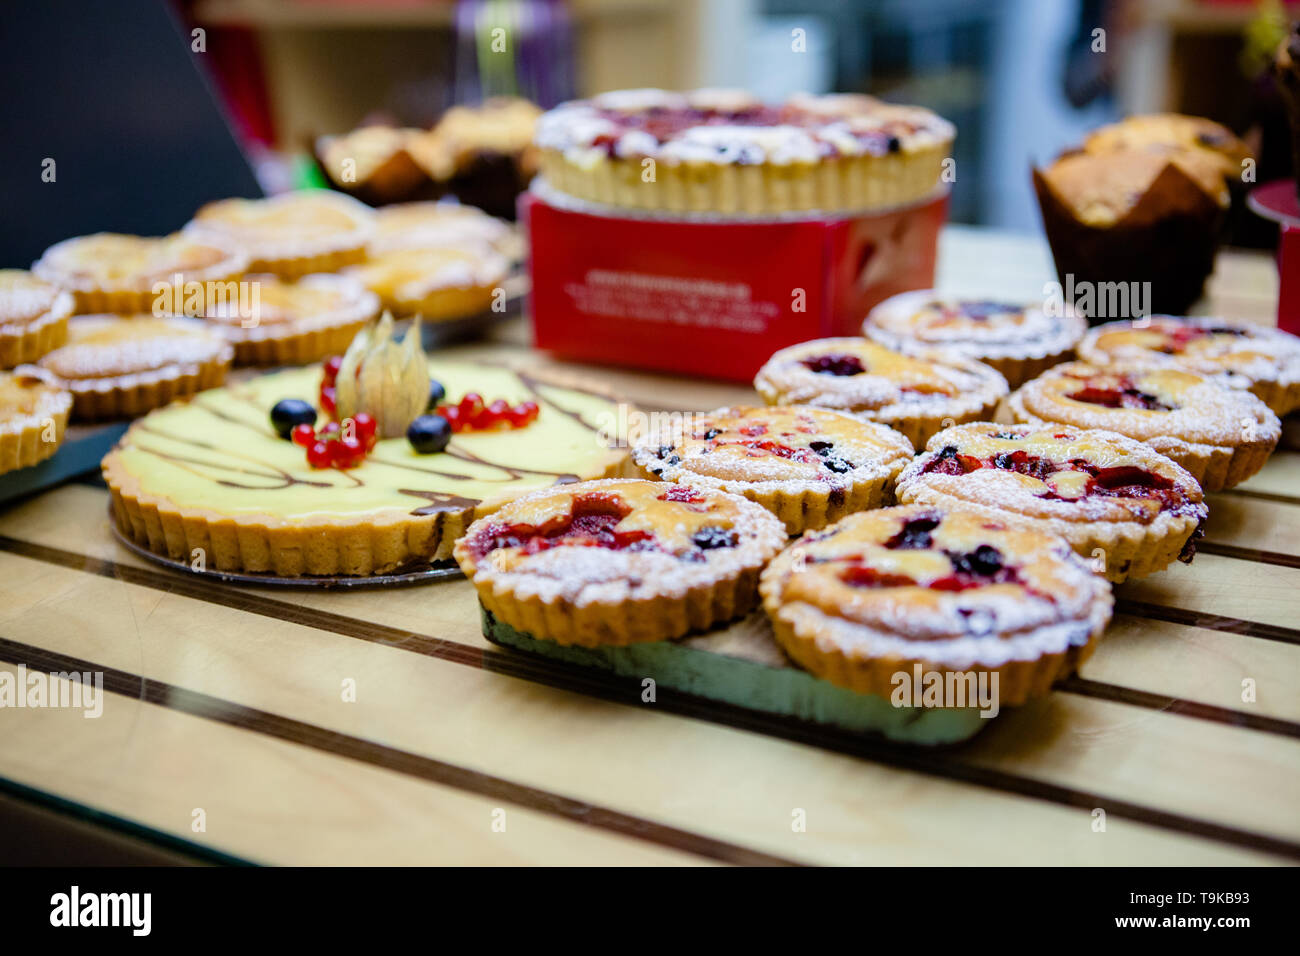 Various Different Types Of Sweet Cakes In Pastry Shop - Stock Image